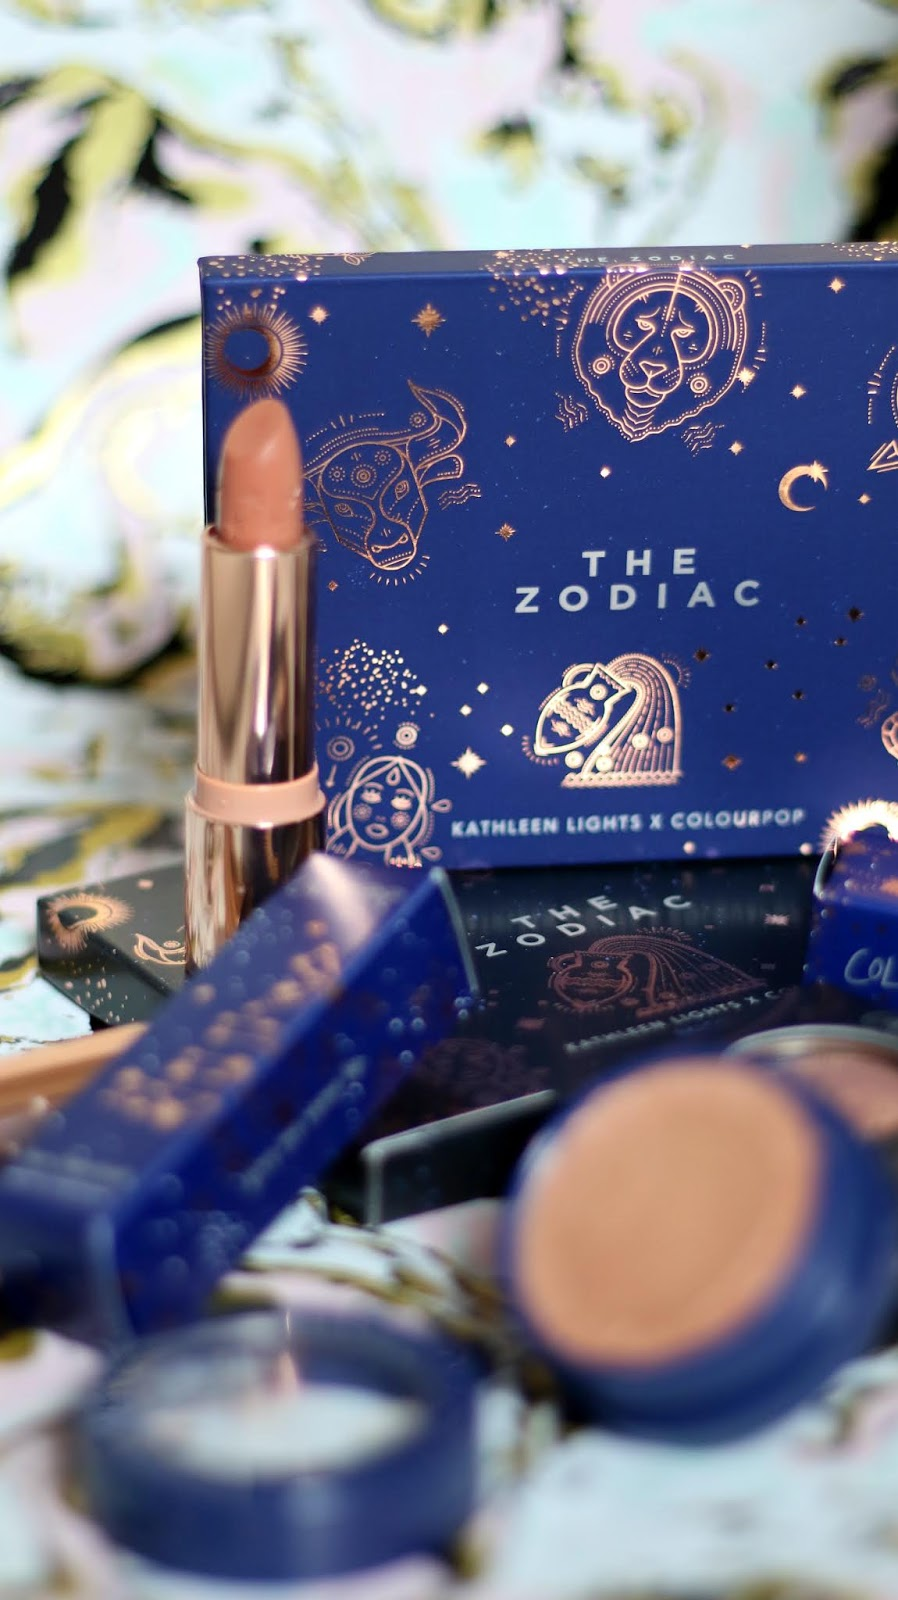 KathleenLights x ColourPop The Zodiac Full Collection